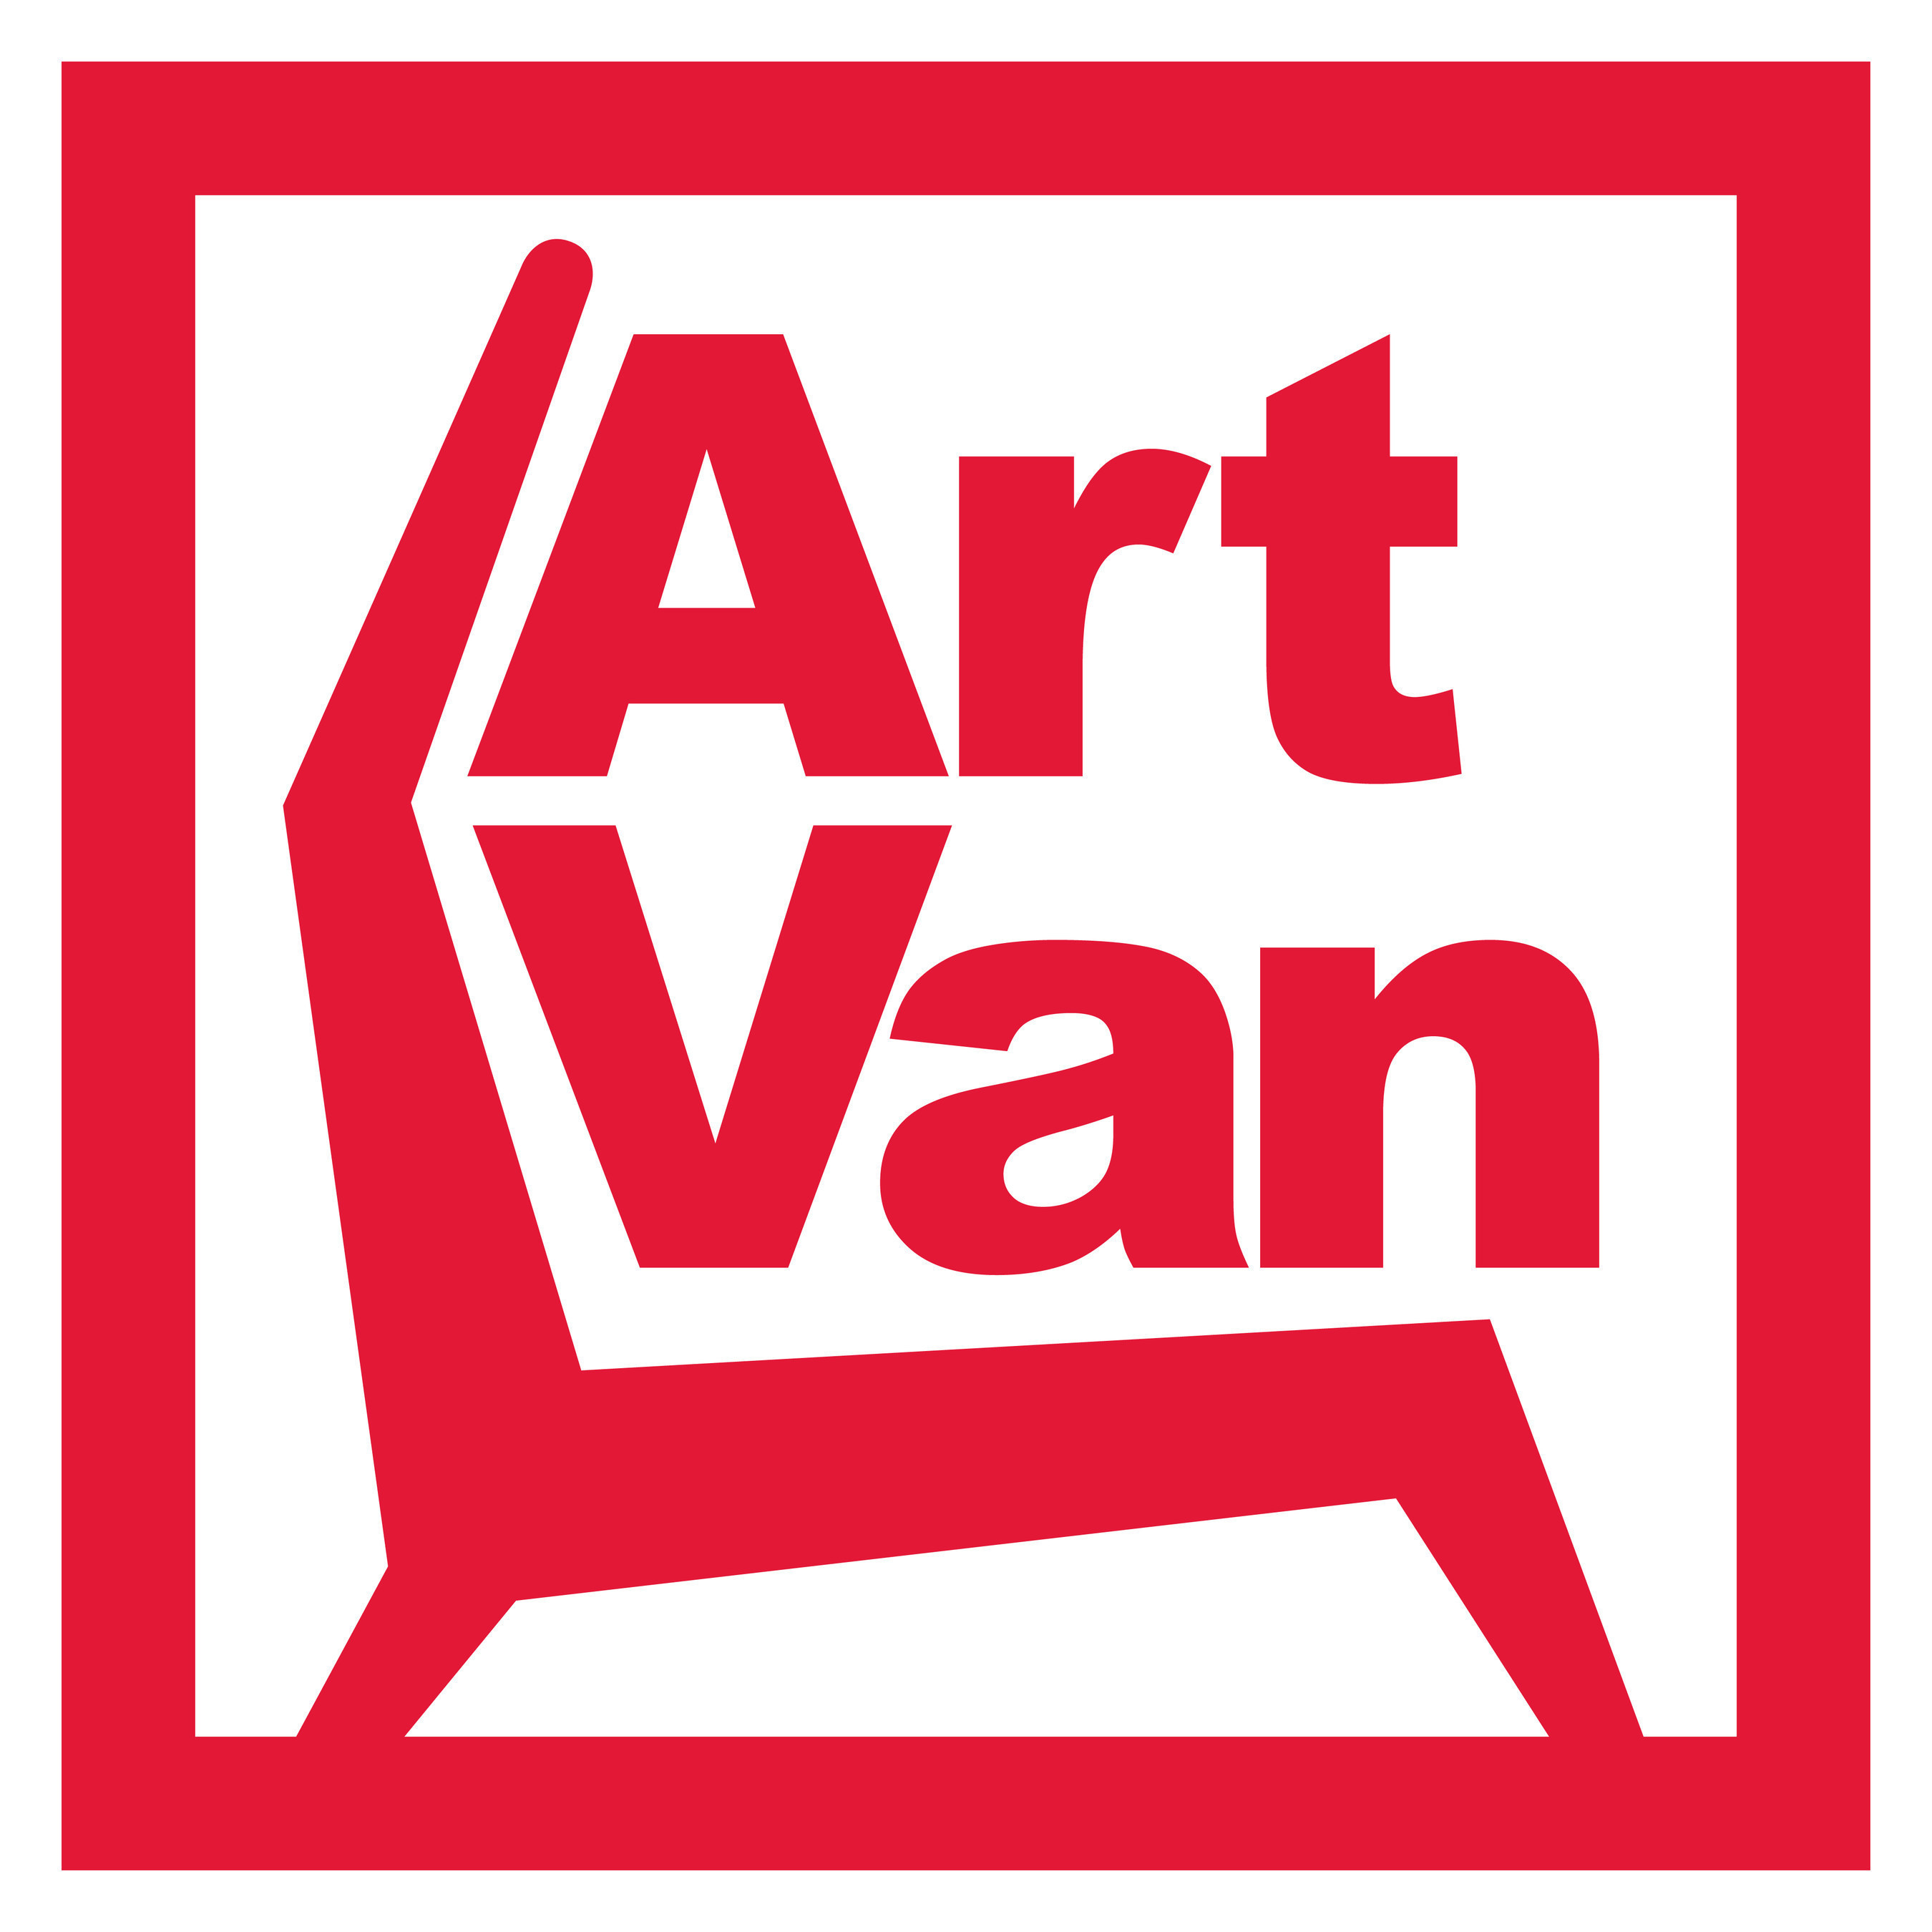 Art Van Wonderland S Dazzling Indoor And Outdoor Holiday Decor Display In Grand Rapids To Delight Guests During The Most Wonderful Time Of The Year